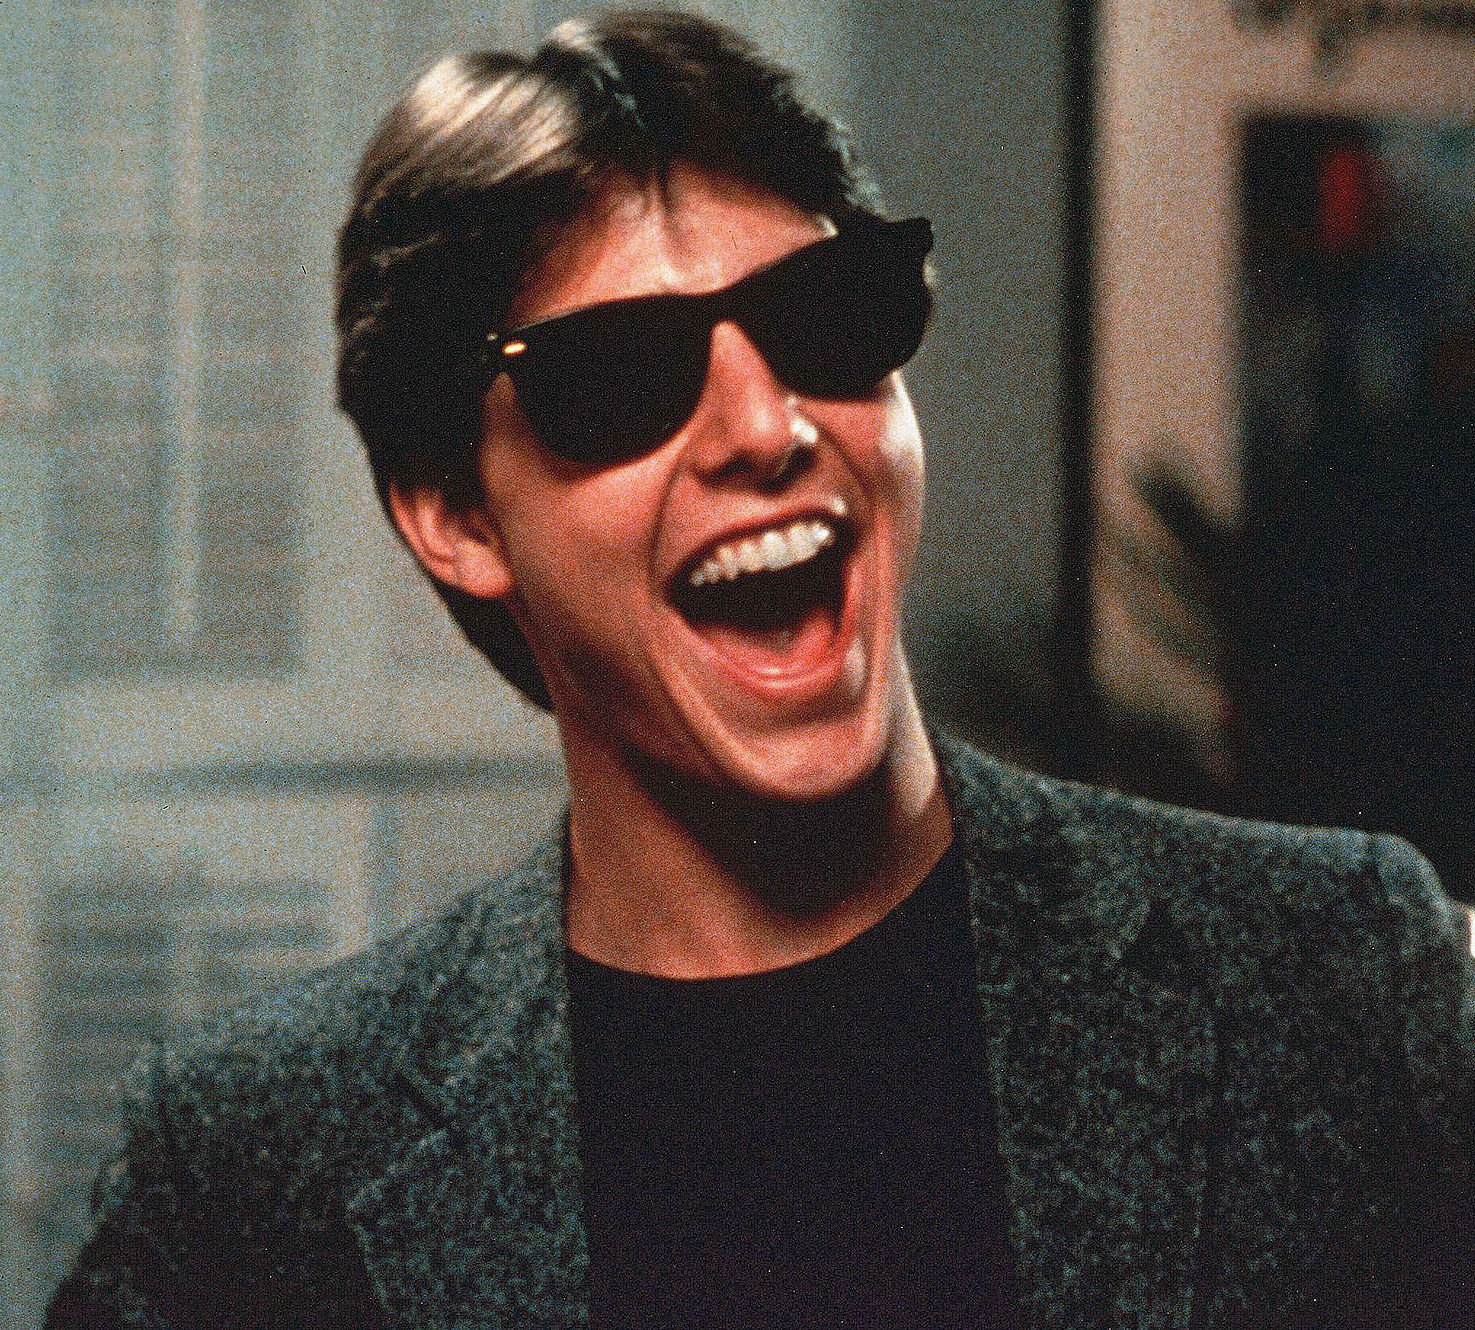 tom cruise risky business 1 e1610711627345 20 Things You Probably Didn't Know About The 1983 Film The Outsiders